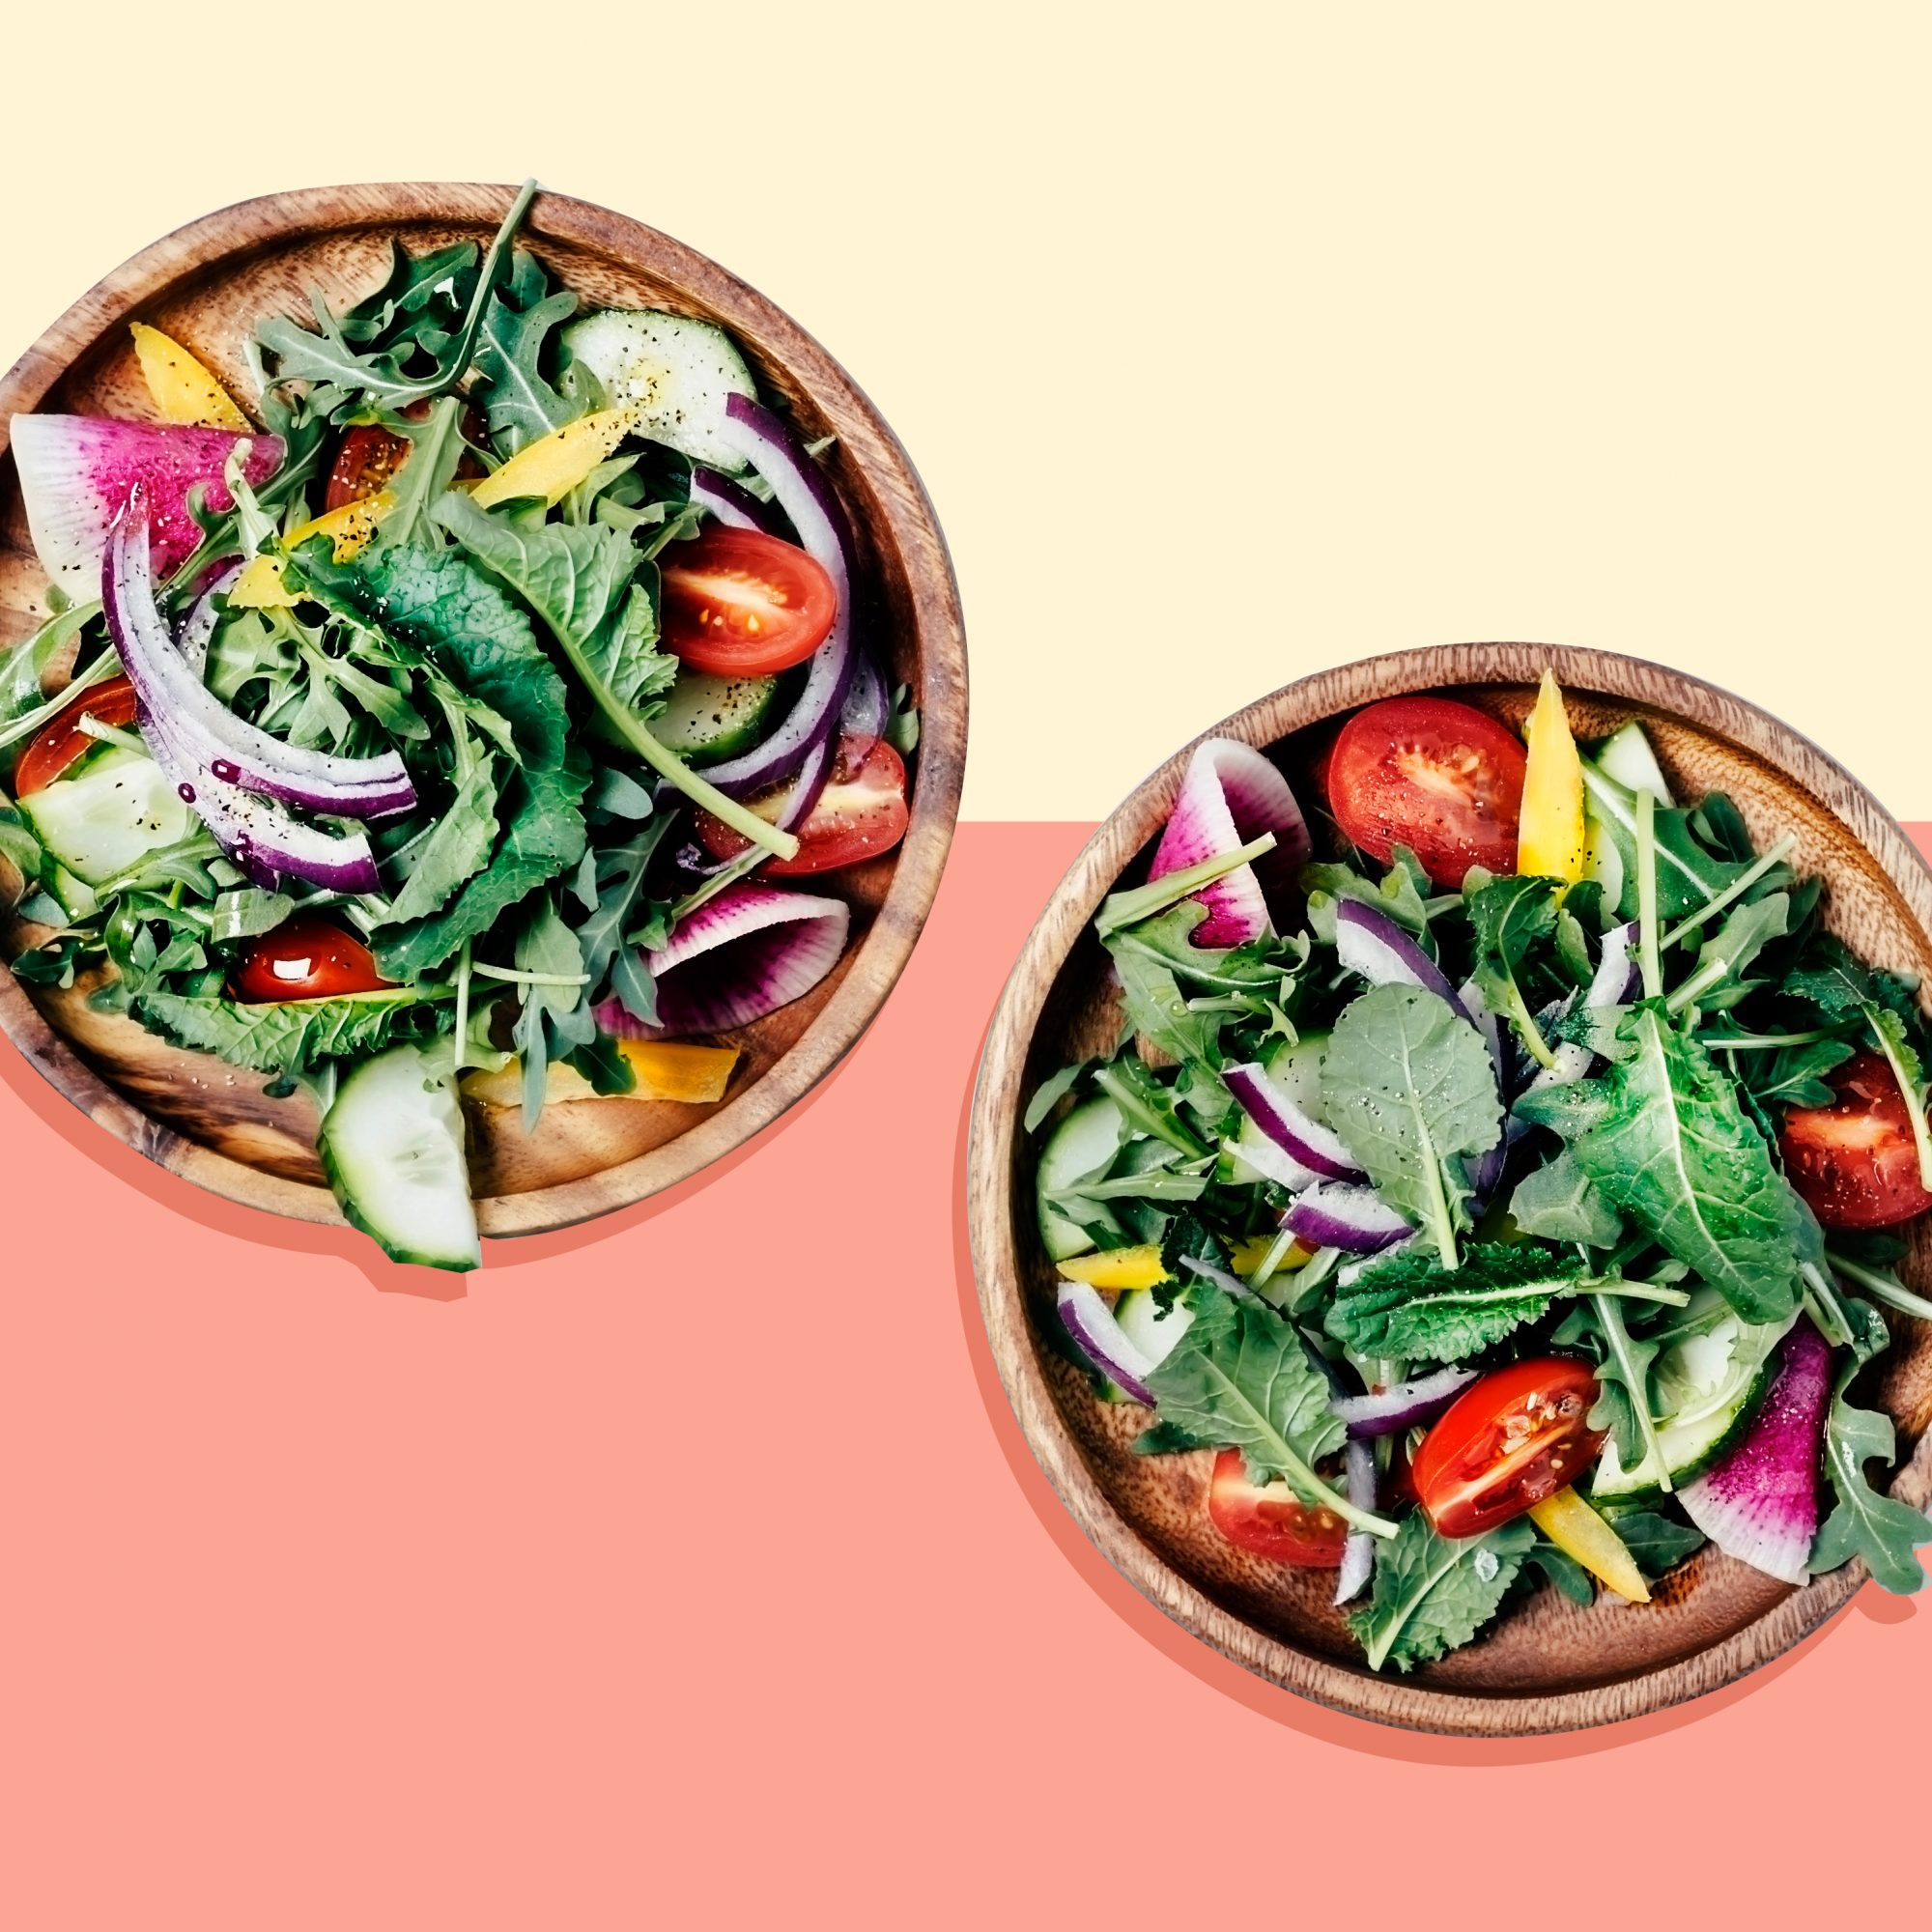 12 Easy Summer Salad Recipes That Use The Season's Best Ingredients